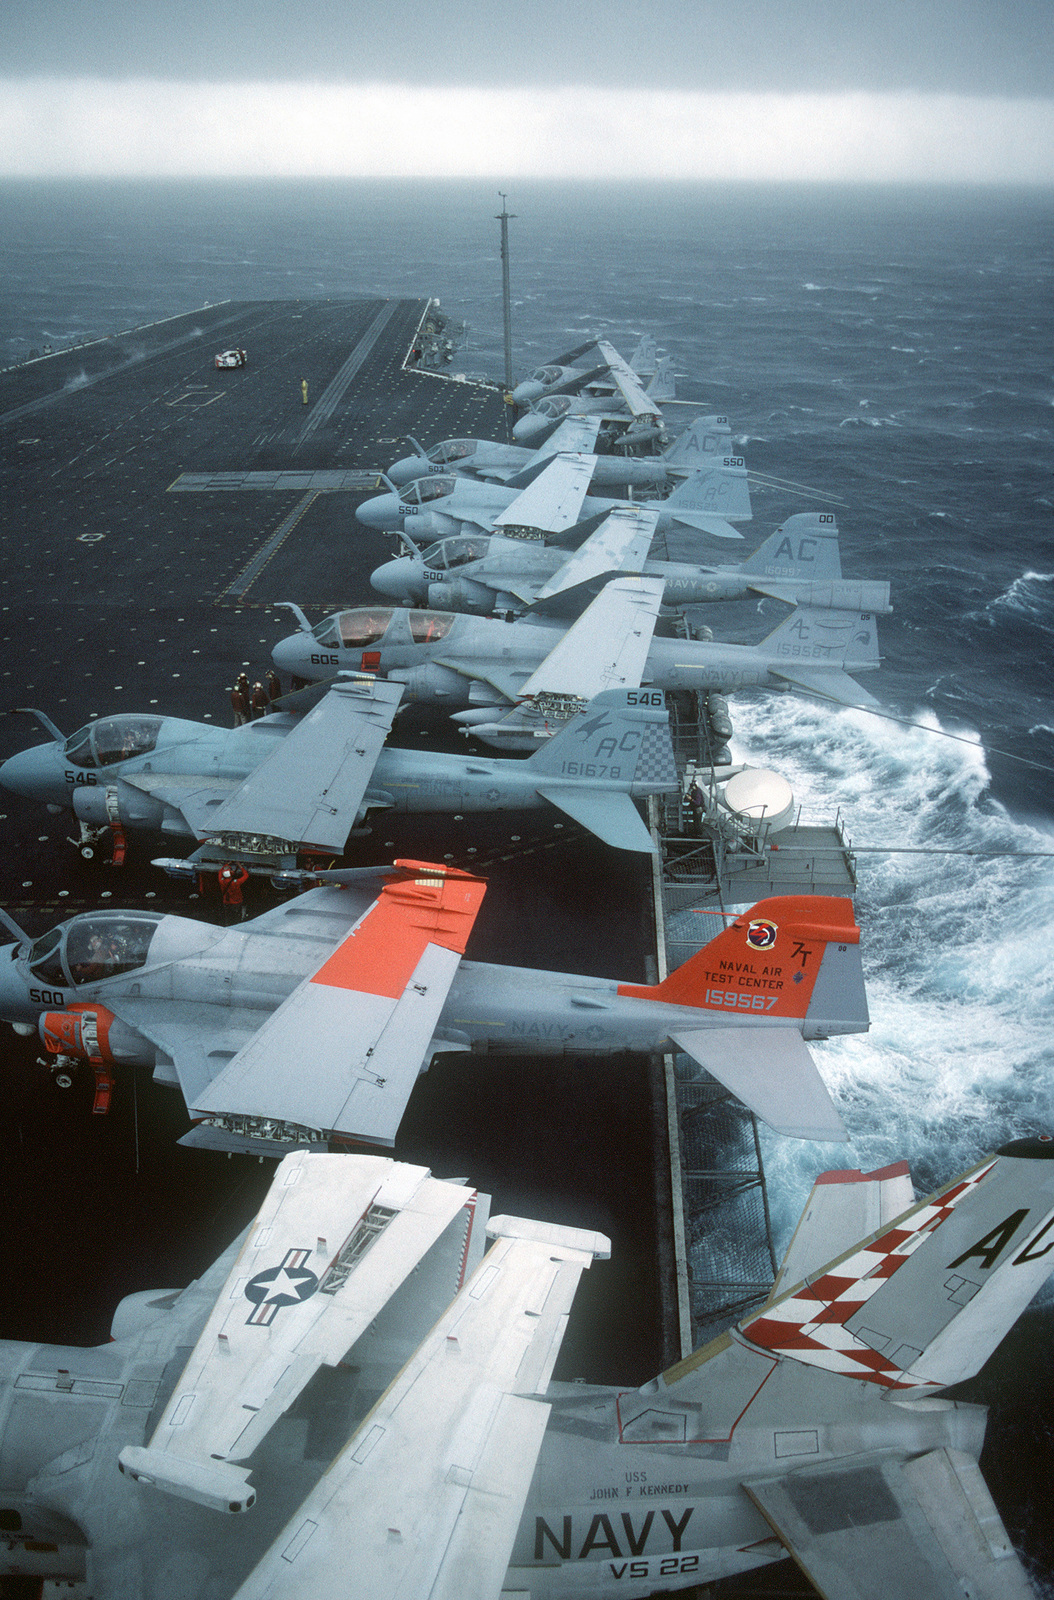 S-3A Viking, A-6E Intruder, and an EA-6B Prowler aircraft are parked on the flight deck of the aircraft carrier USS JOHN F. KENNEDY (CV 67) during a storm